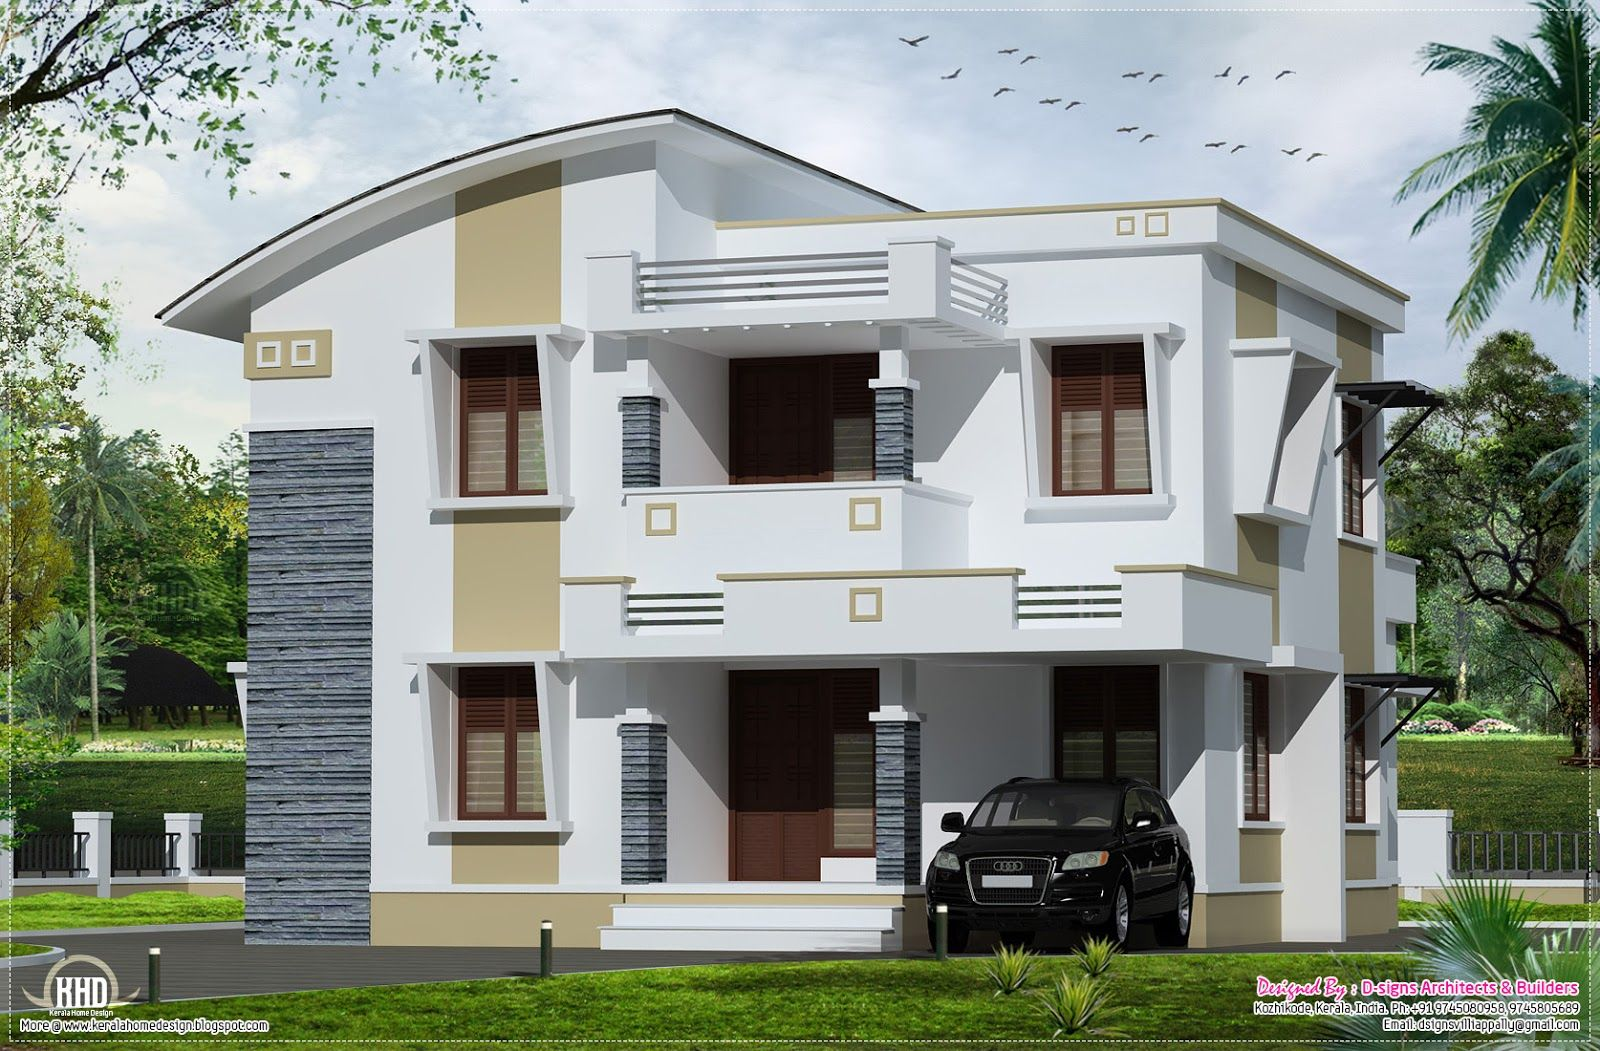 Simple Flat Roof Home Flat Roof House Kerala House Design Simple House Design